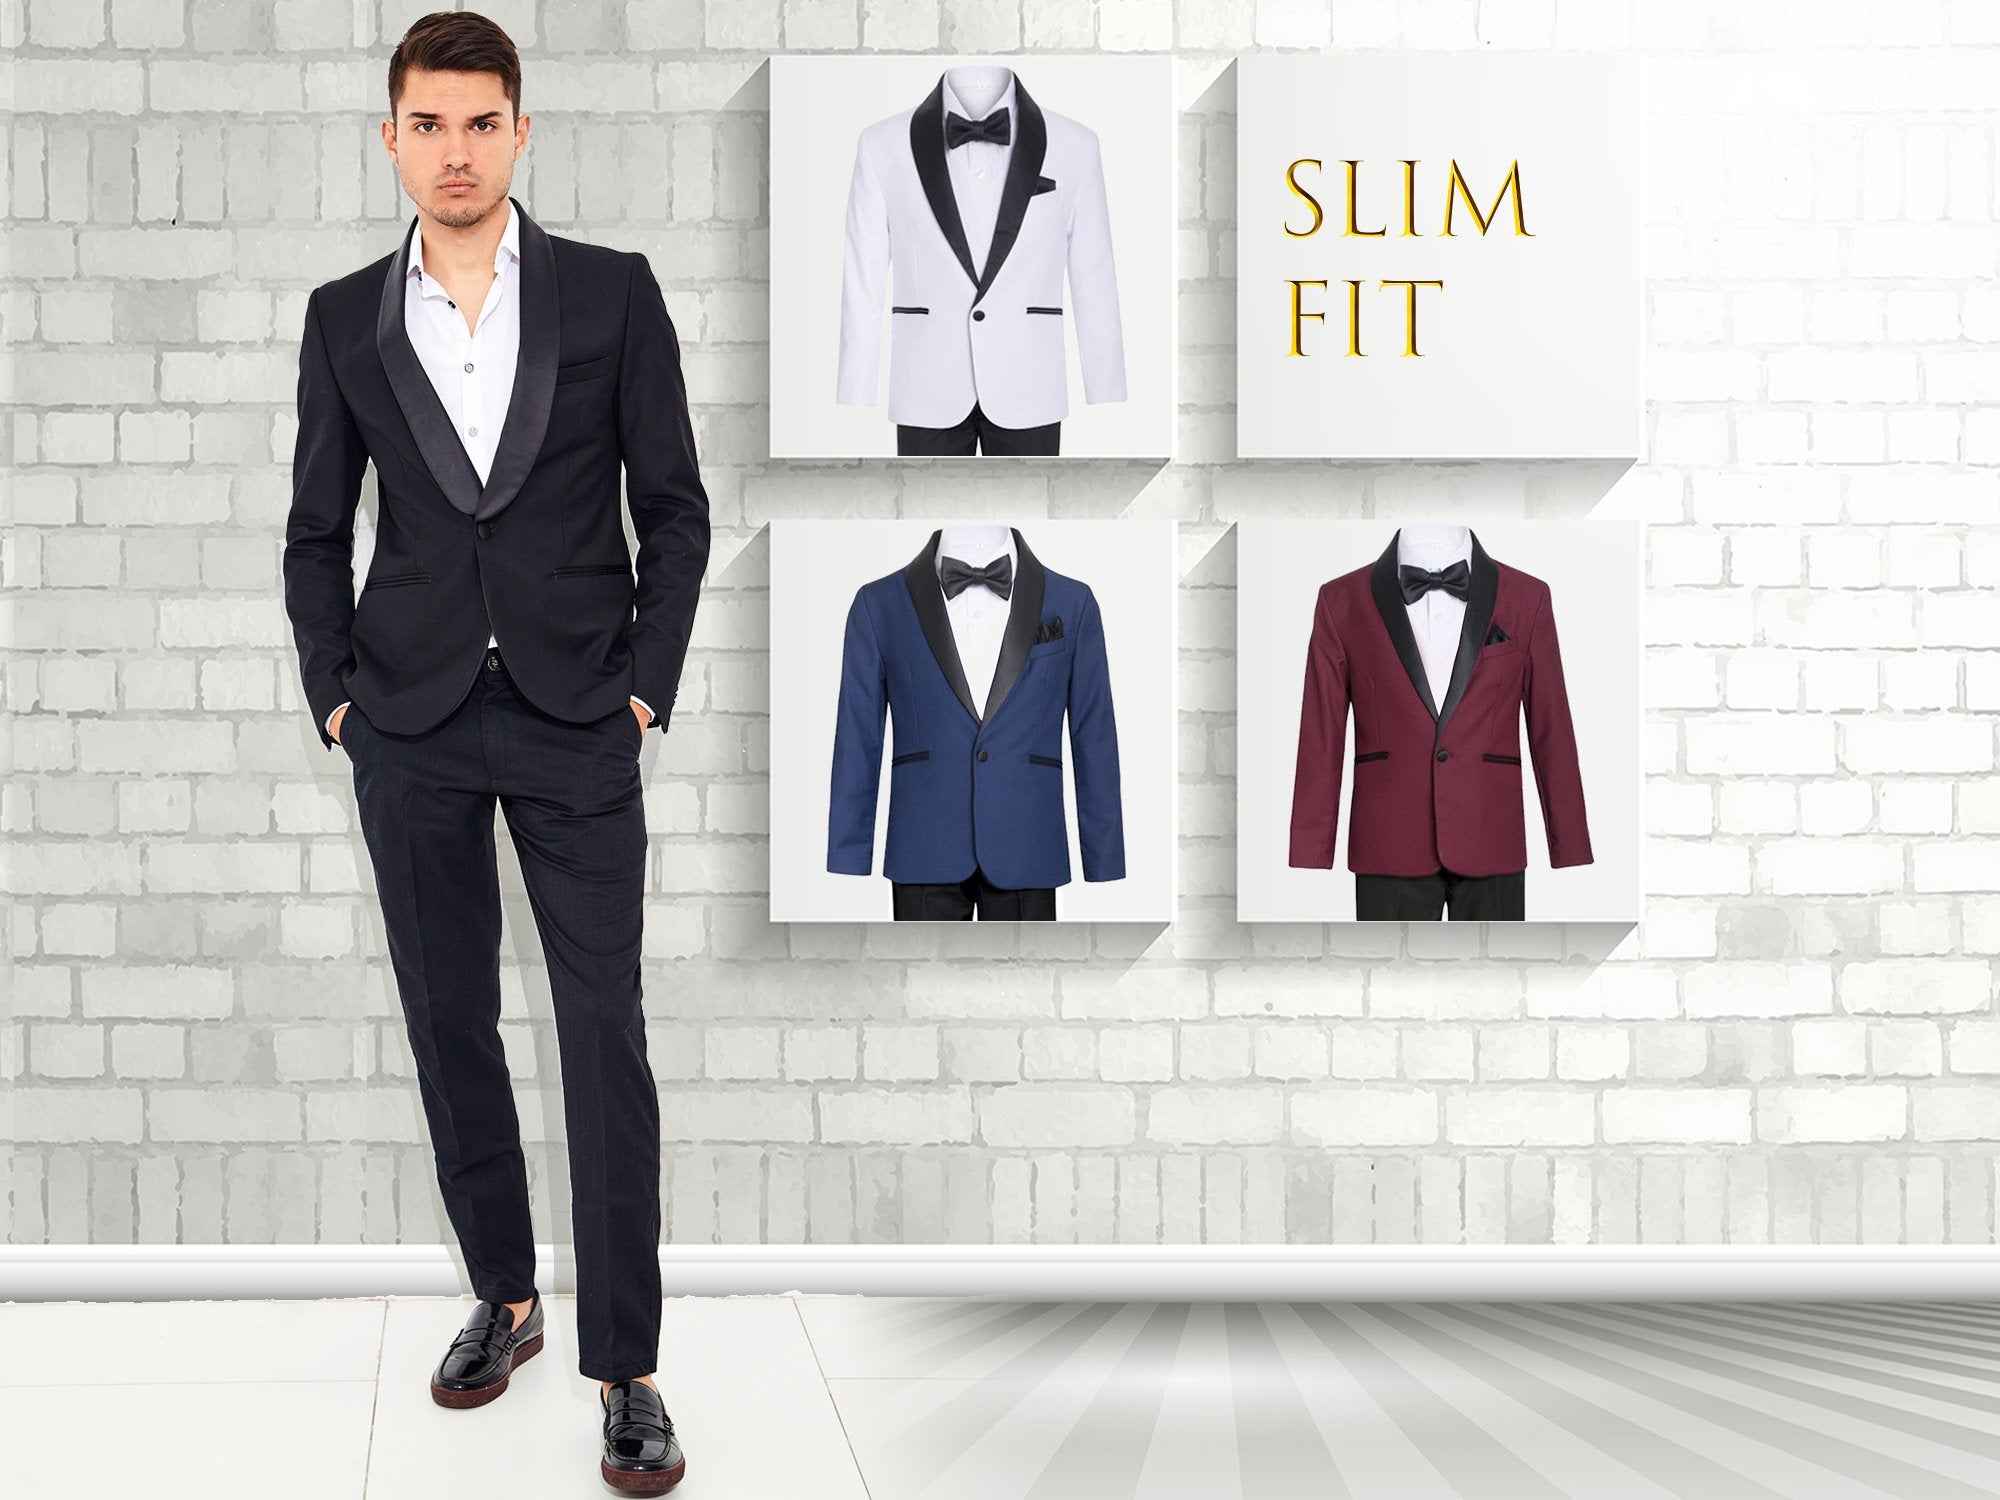 Men Slim Fit Premium 2-Piece Suit Black Satin Shawl Lapel, Black, White, Indigo Blue, Burgundy Wine, Size 34R to 46R